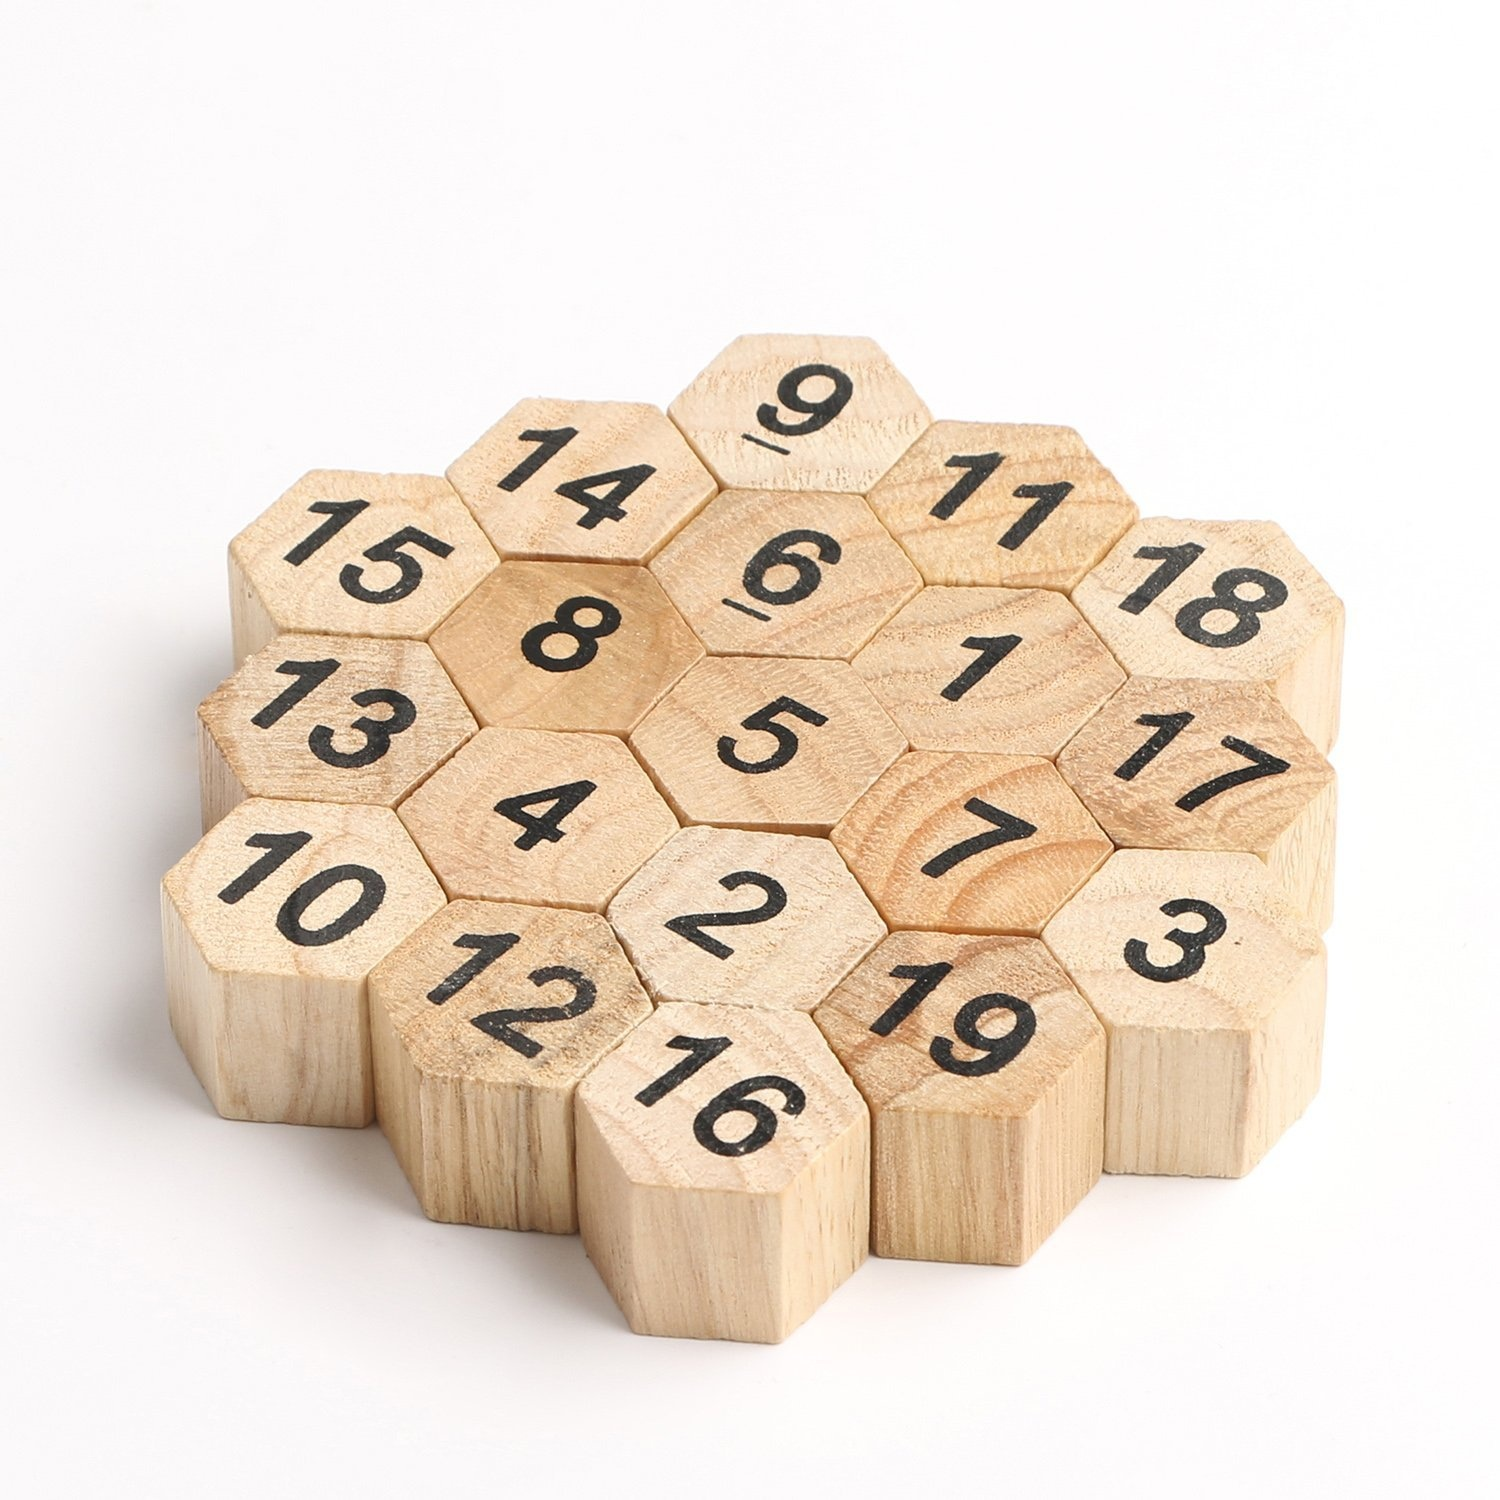 Wooden Puzzles Classic Brain Teaser Hexagon 19 Number Jigsaw Sum